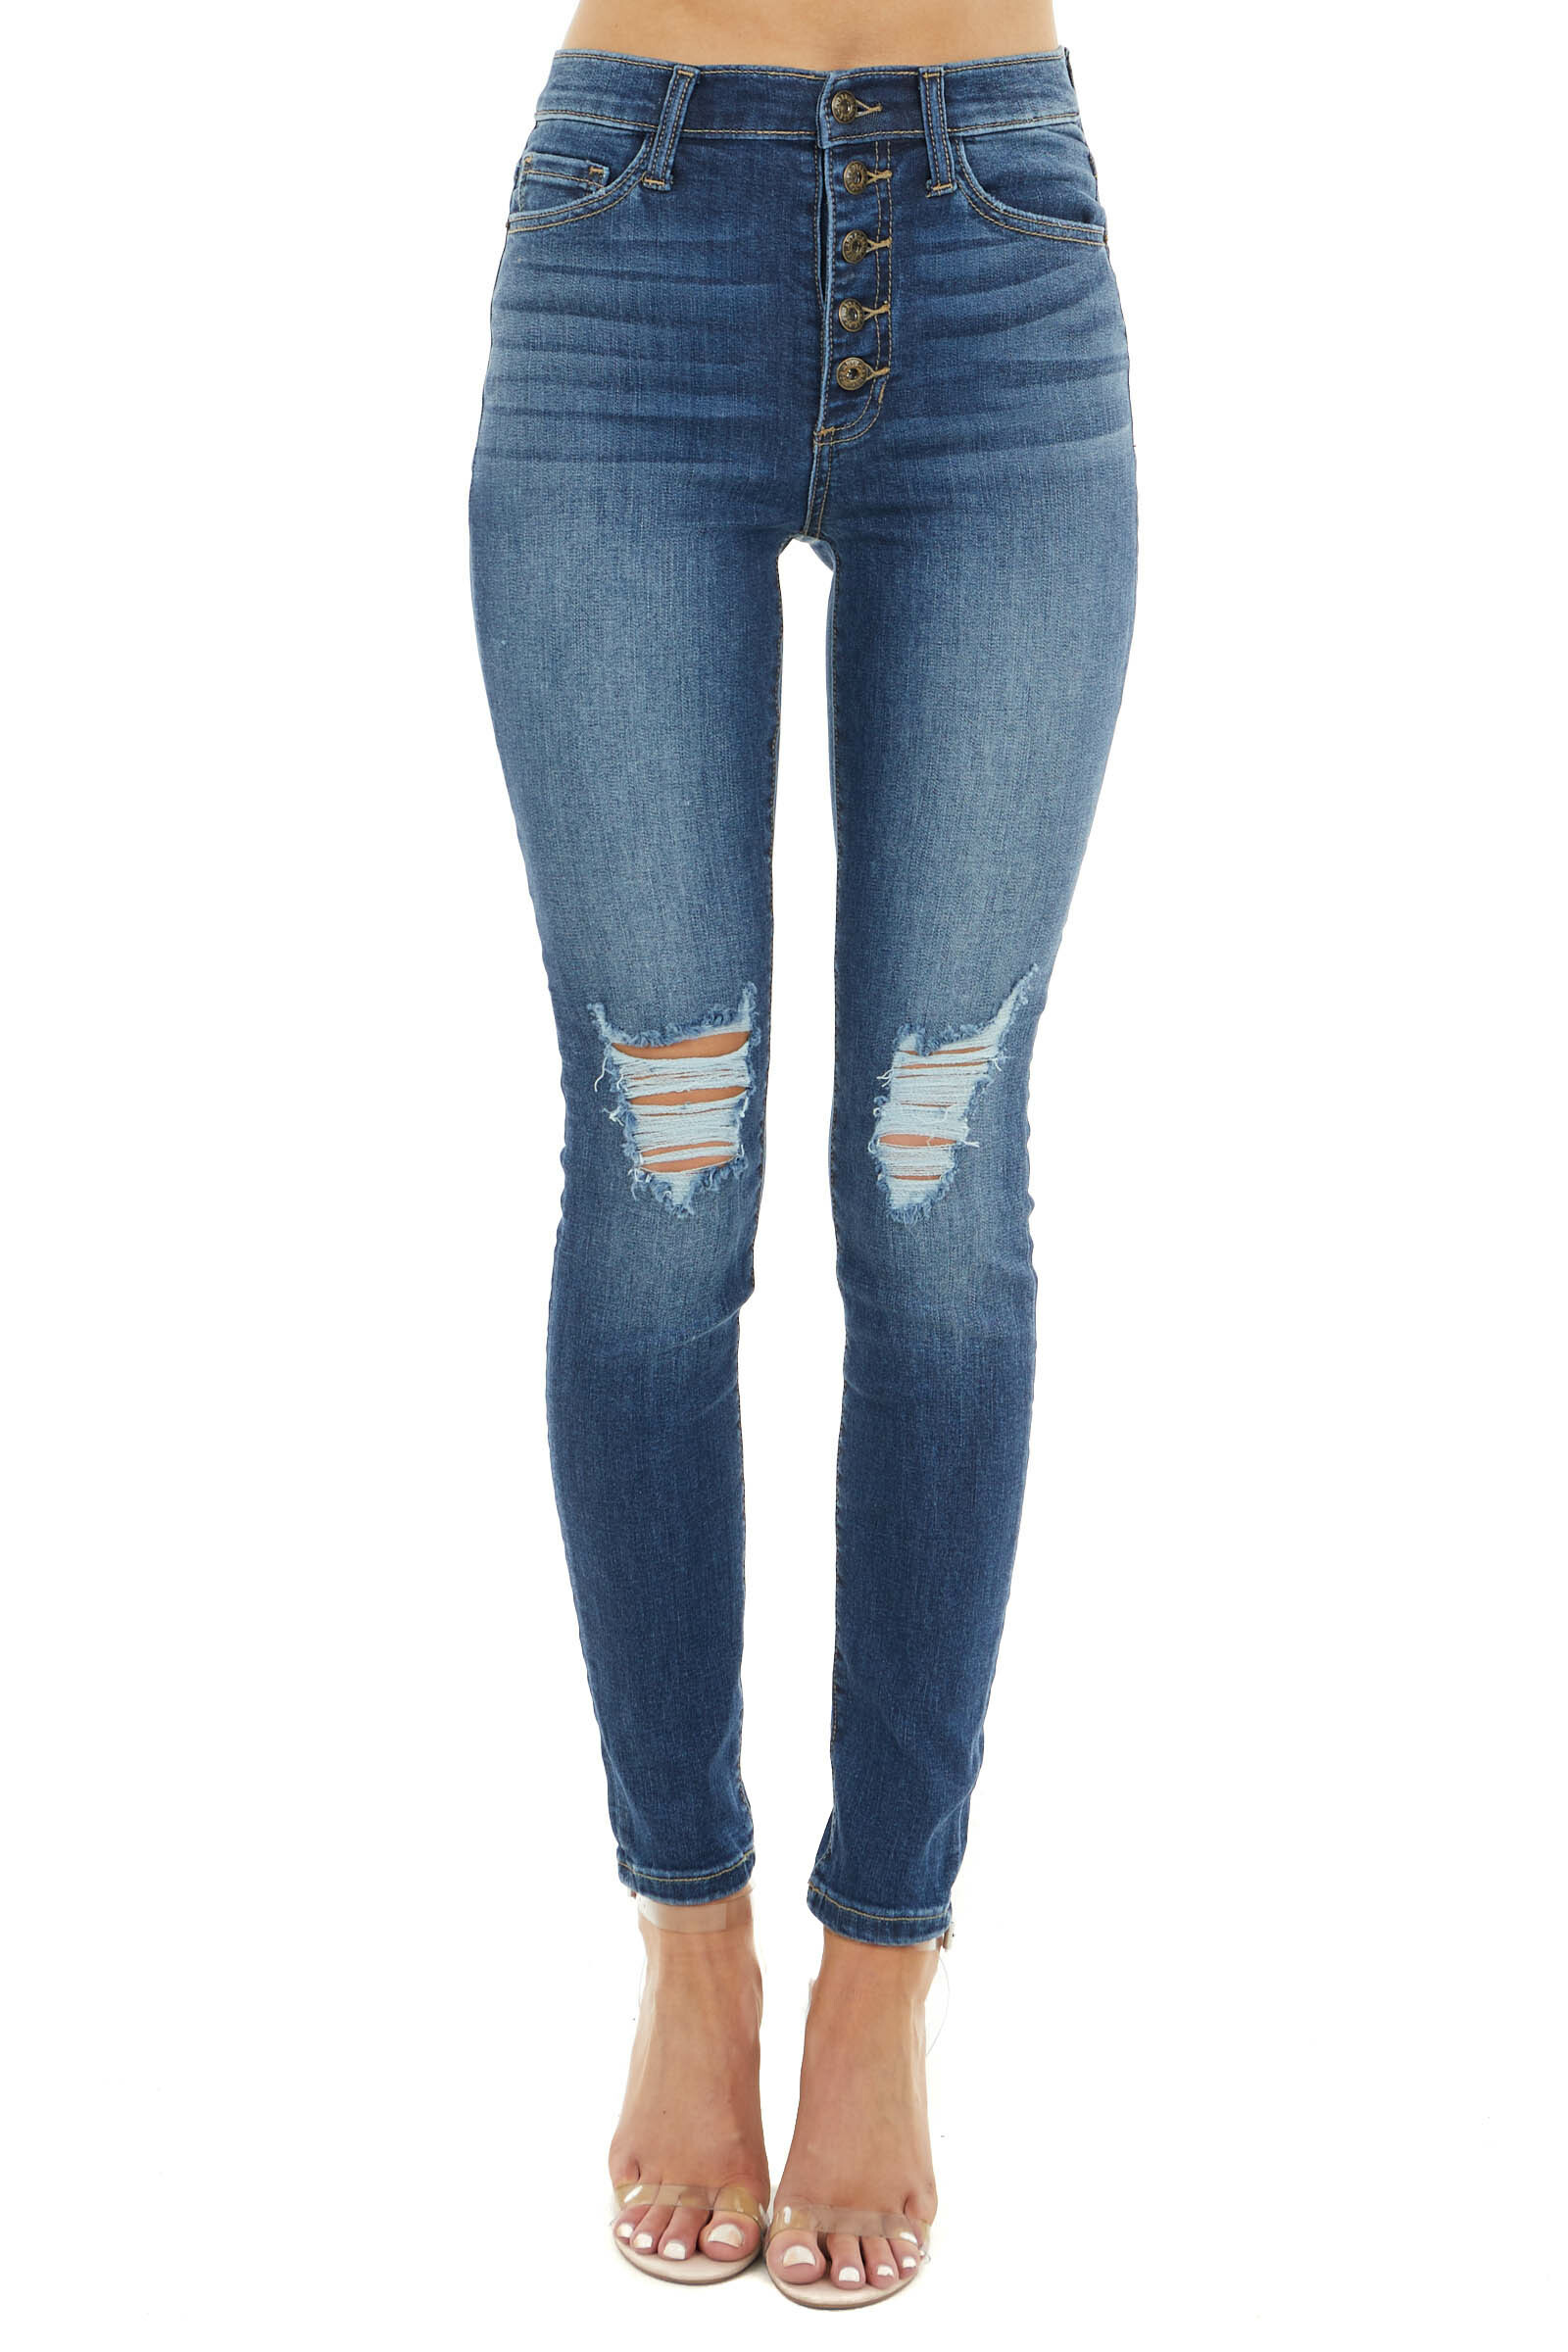 Medium Dark Wash Distressed High Rise Button Up Skinny Jeans